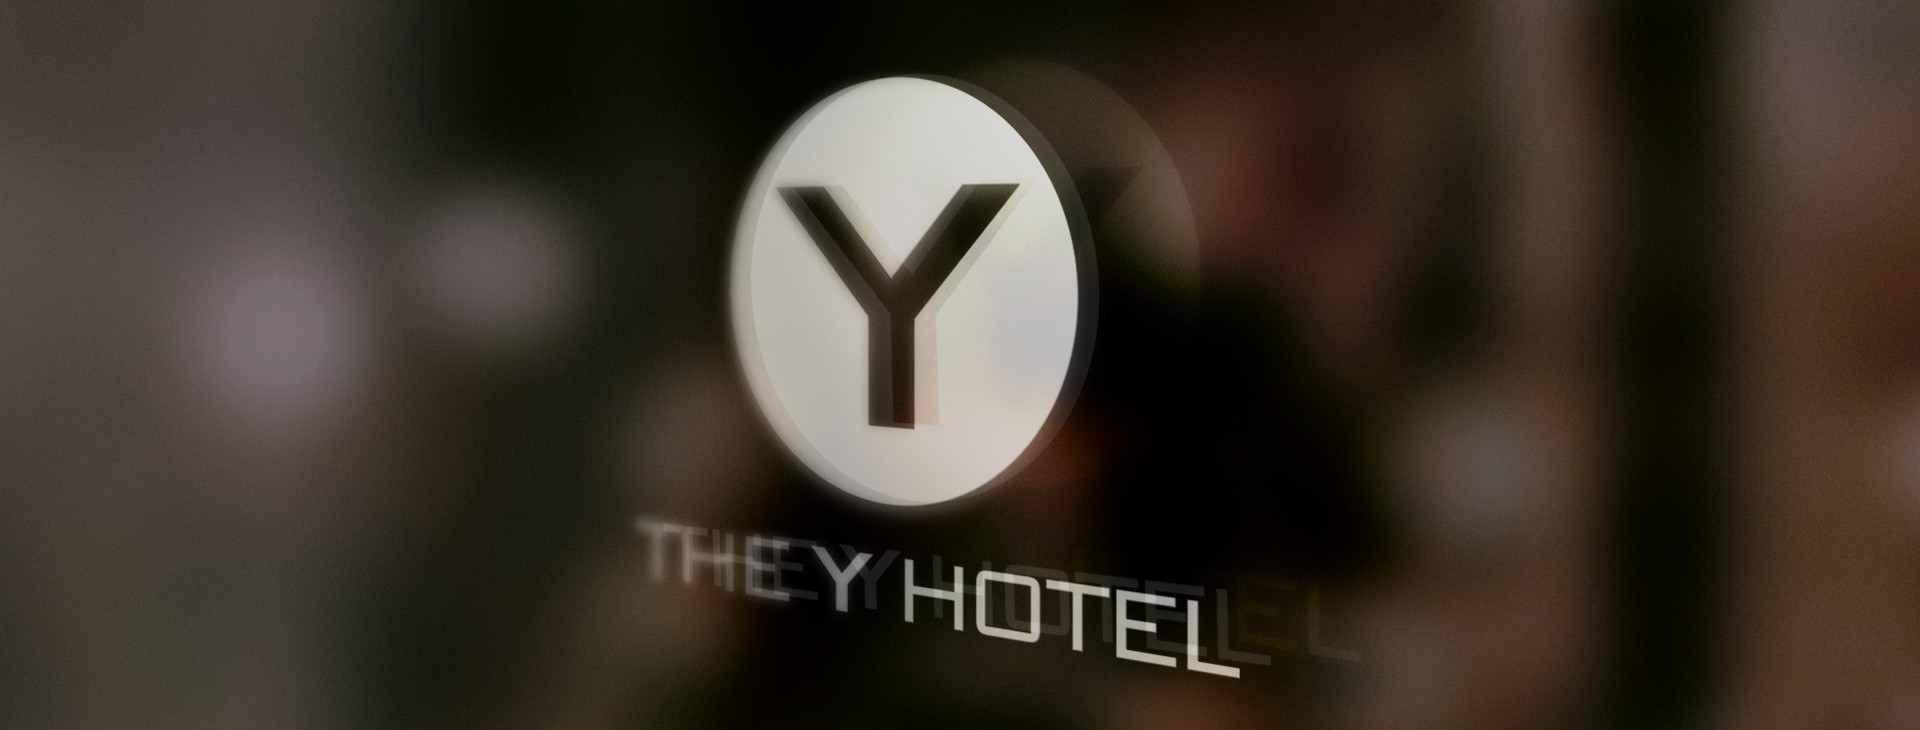 The Y Hotel - Corporate Identity